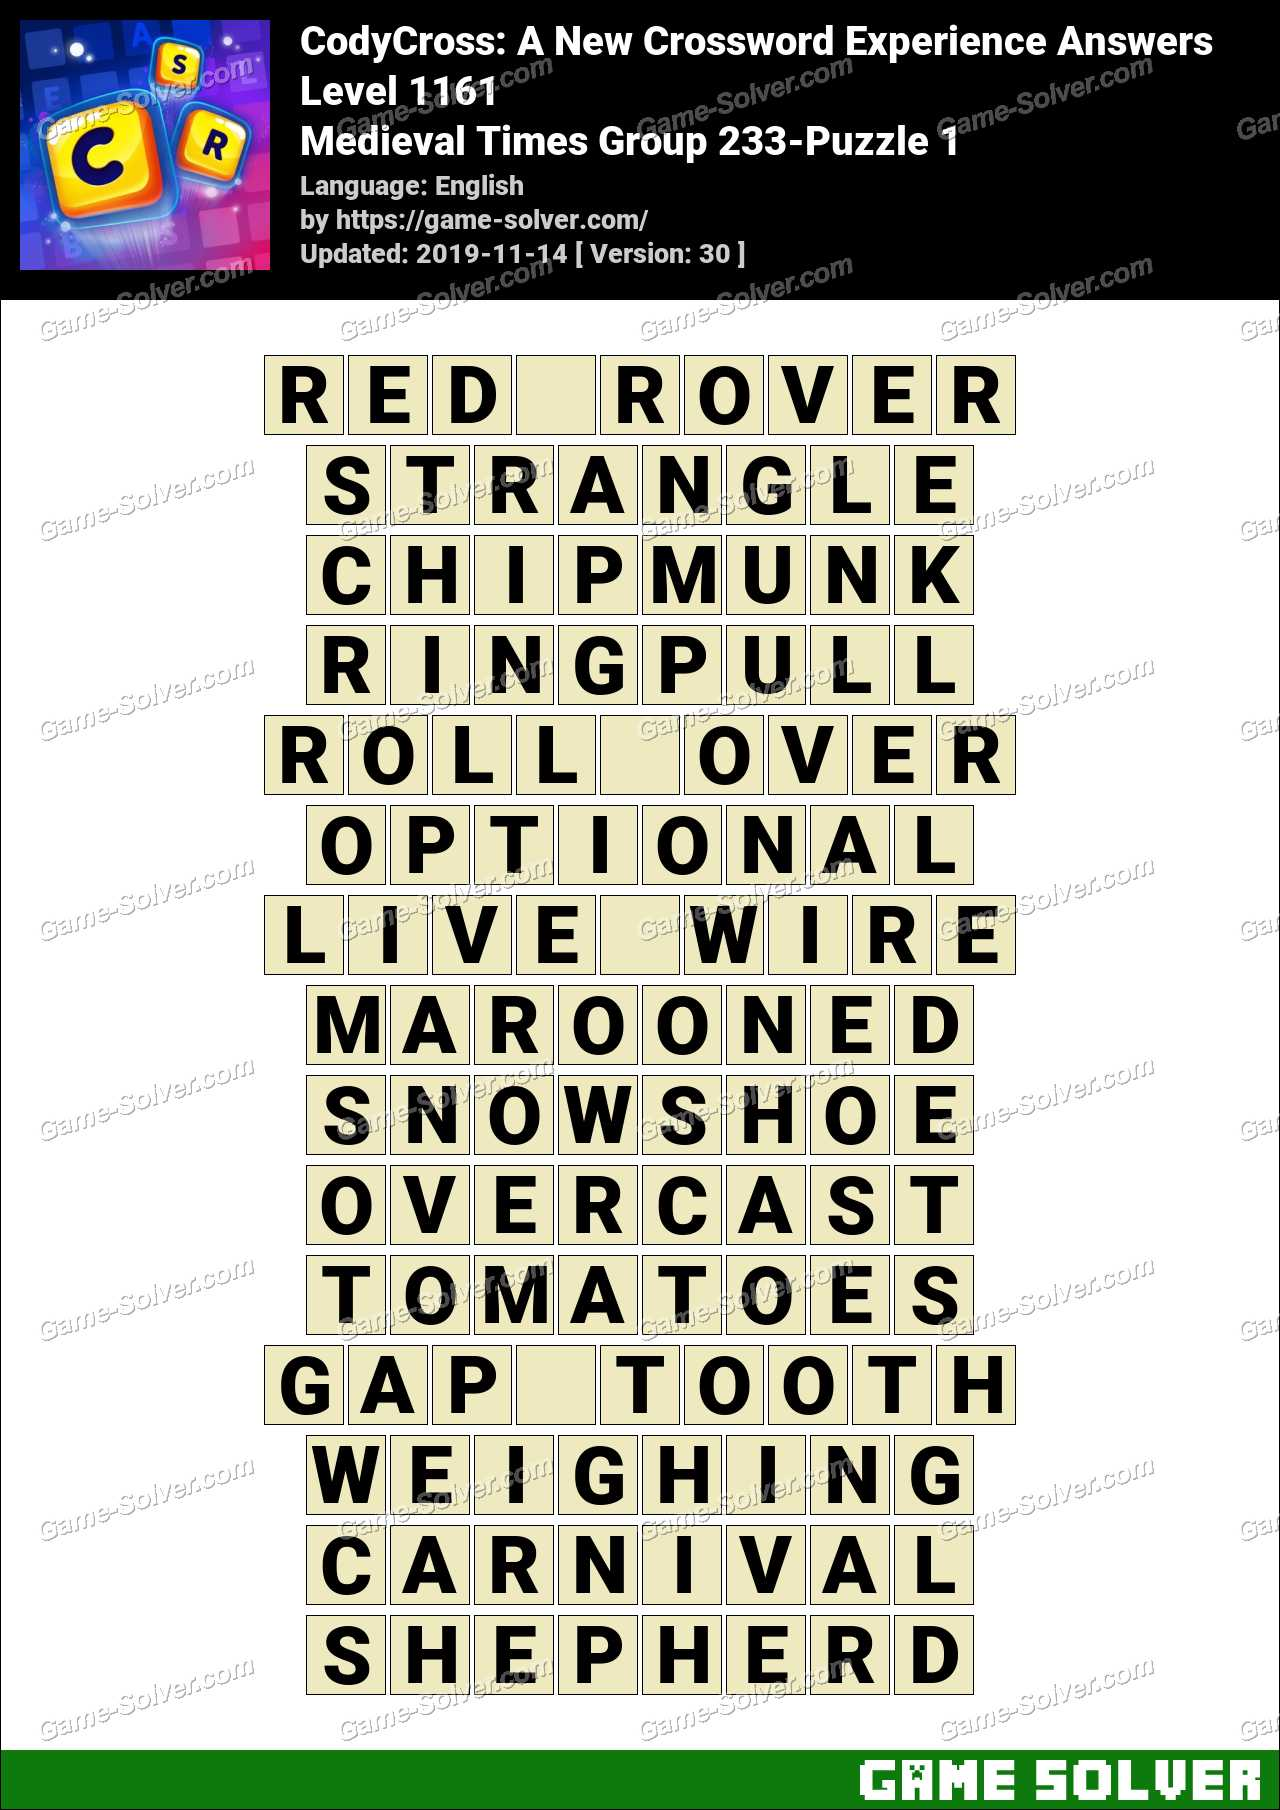 CodyCross Medieval Times Group 233-Puzzle 1 Answers